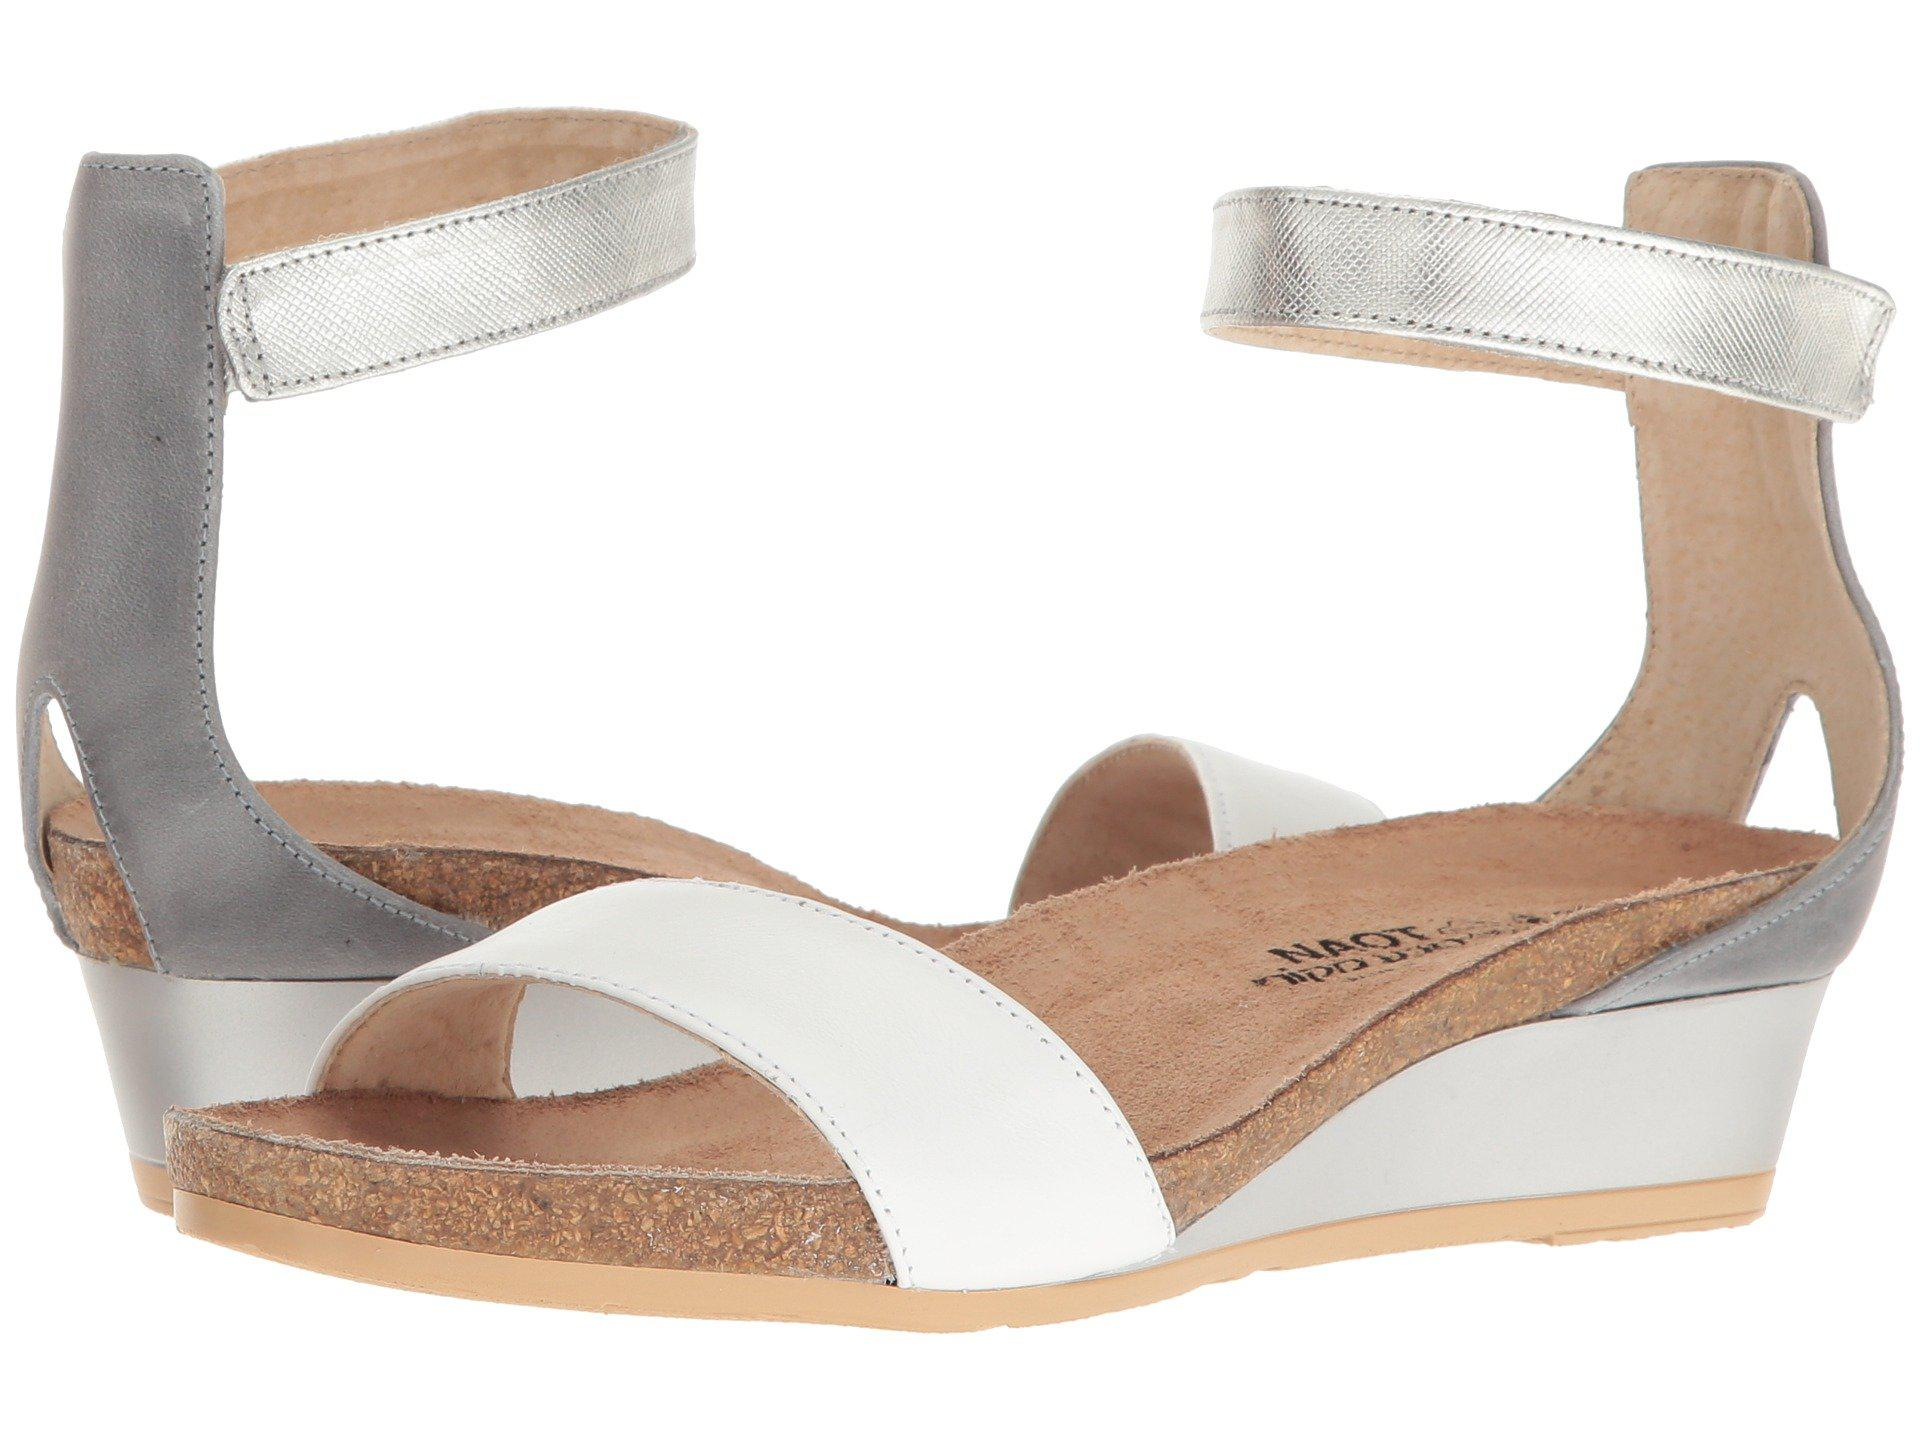 5718b6109ba Lyst - Naot Pixie (oily Olive Suede arizona Tan Leather pewter ...